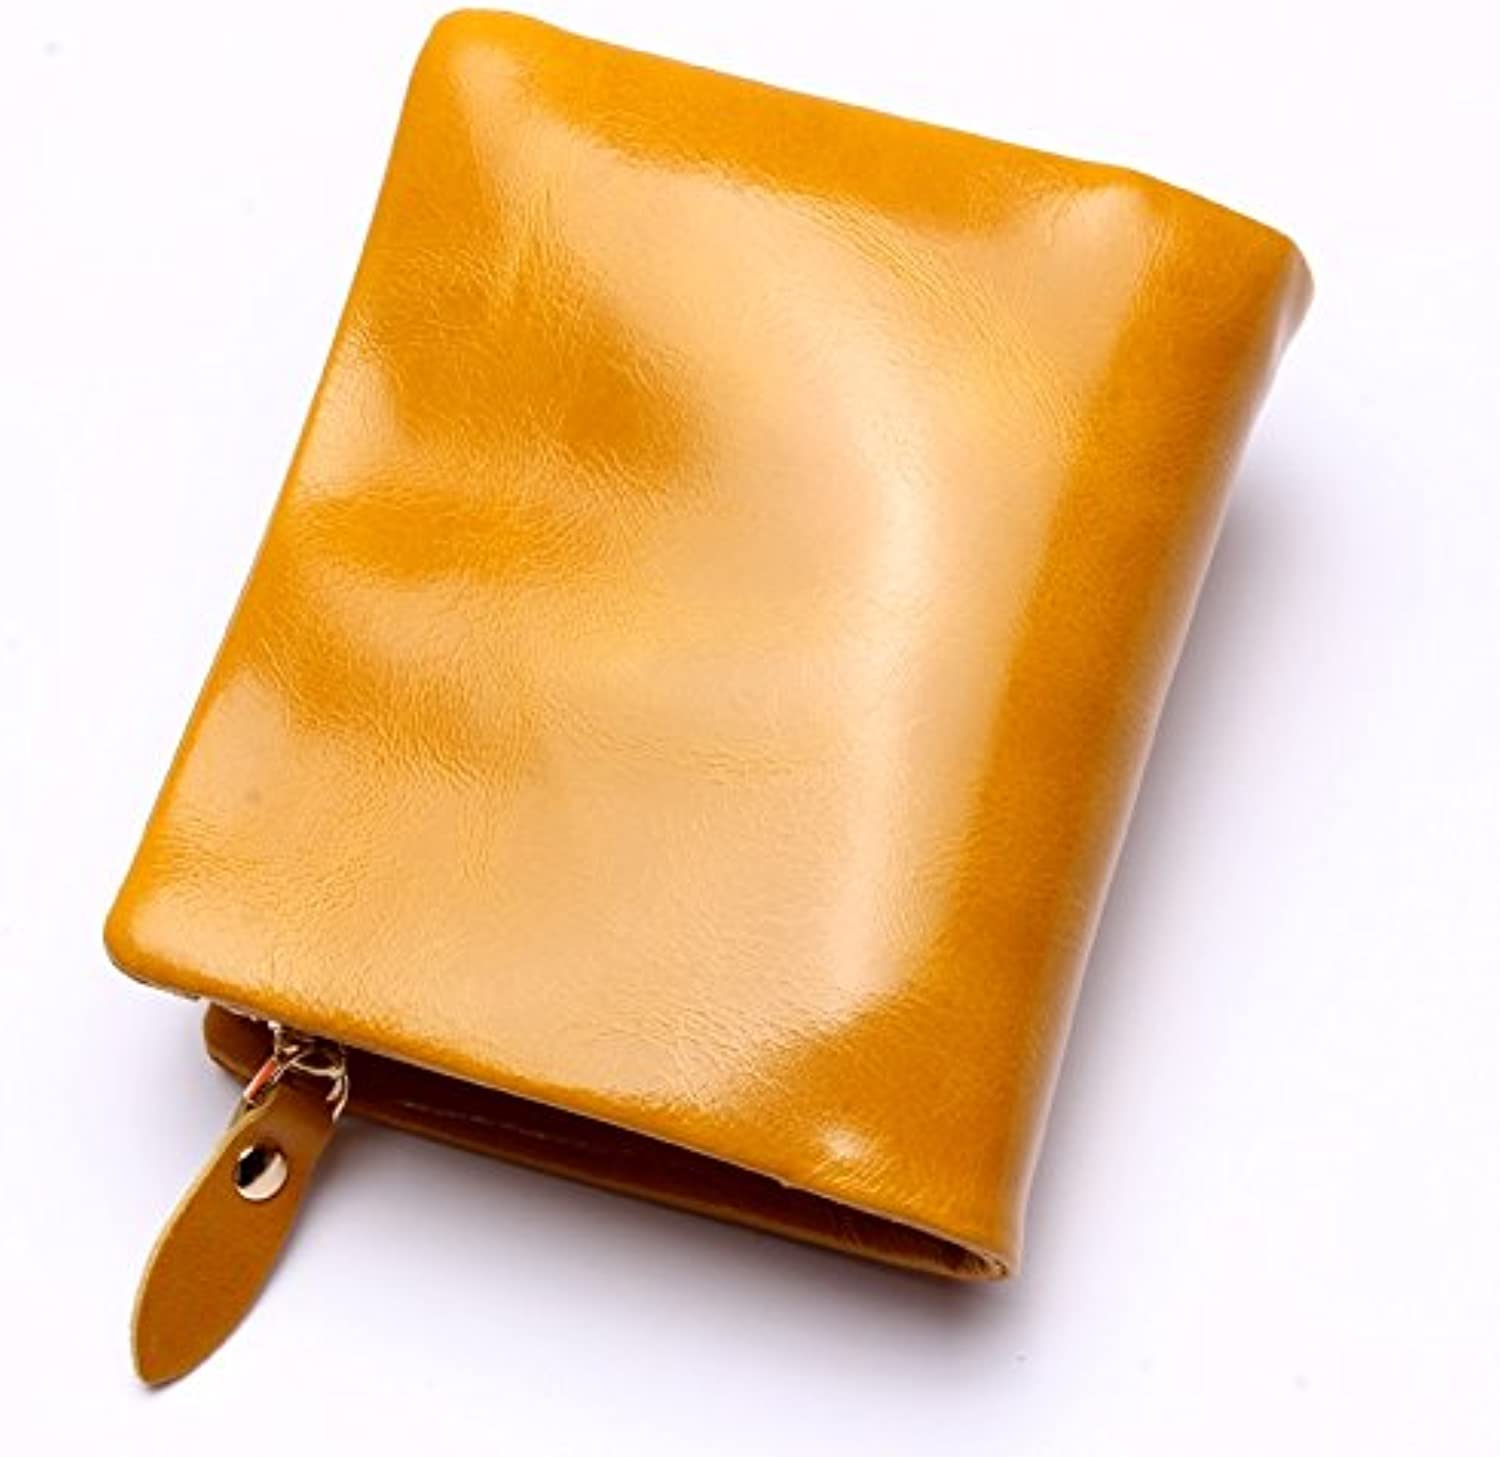 2018 New Zipper Leather Men's Leather Wallet Ladies Clutch Bag Purse Bag (color   Yellow, Size   S)